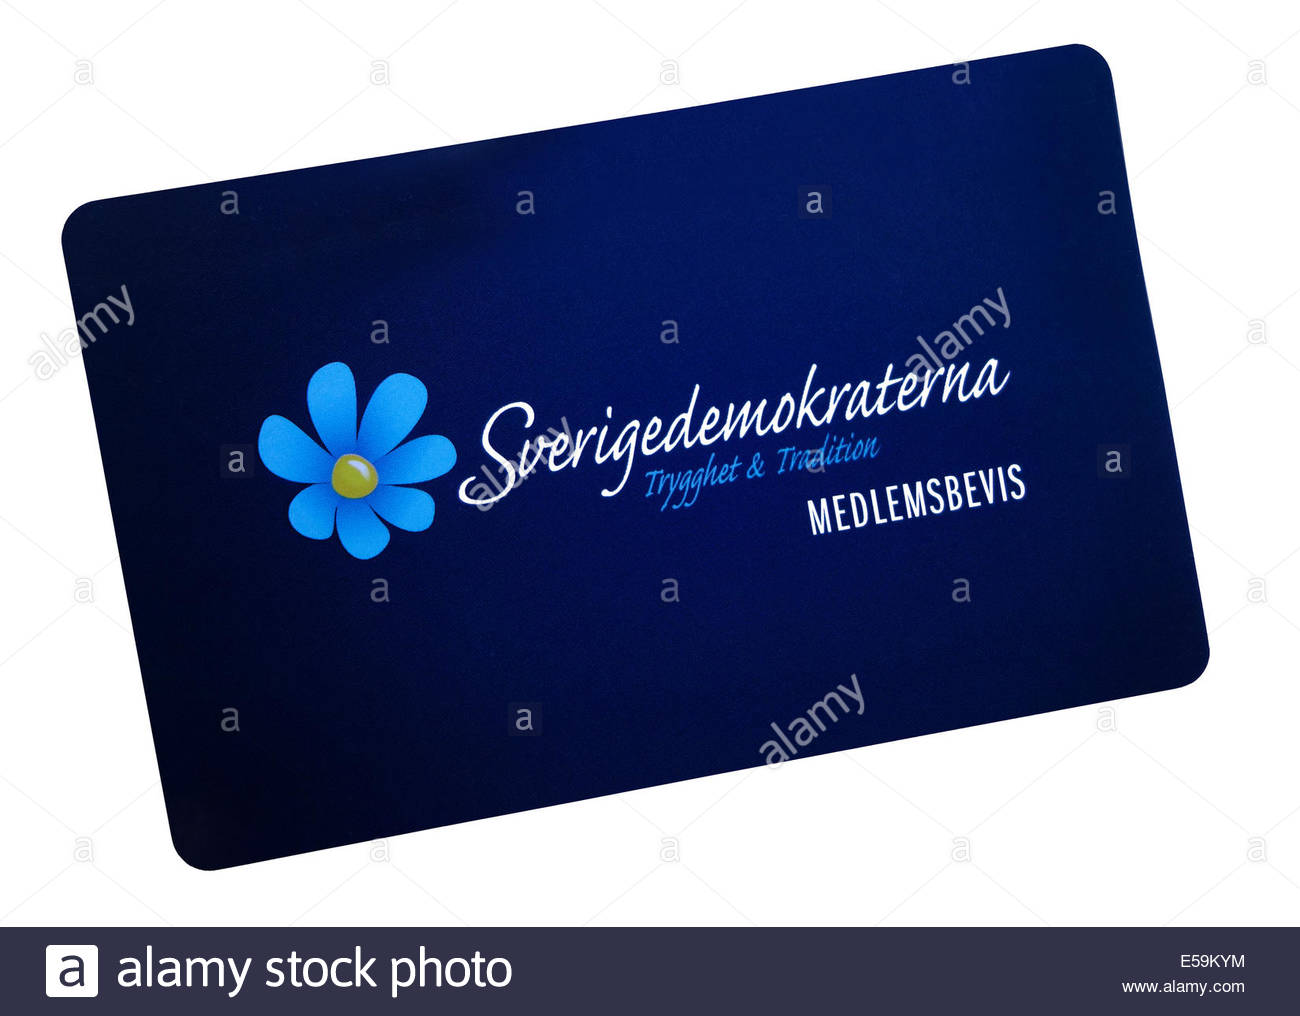 The Sweden Democrats or Swedish Democrats political party membership card front side. - Stock Image